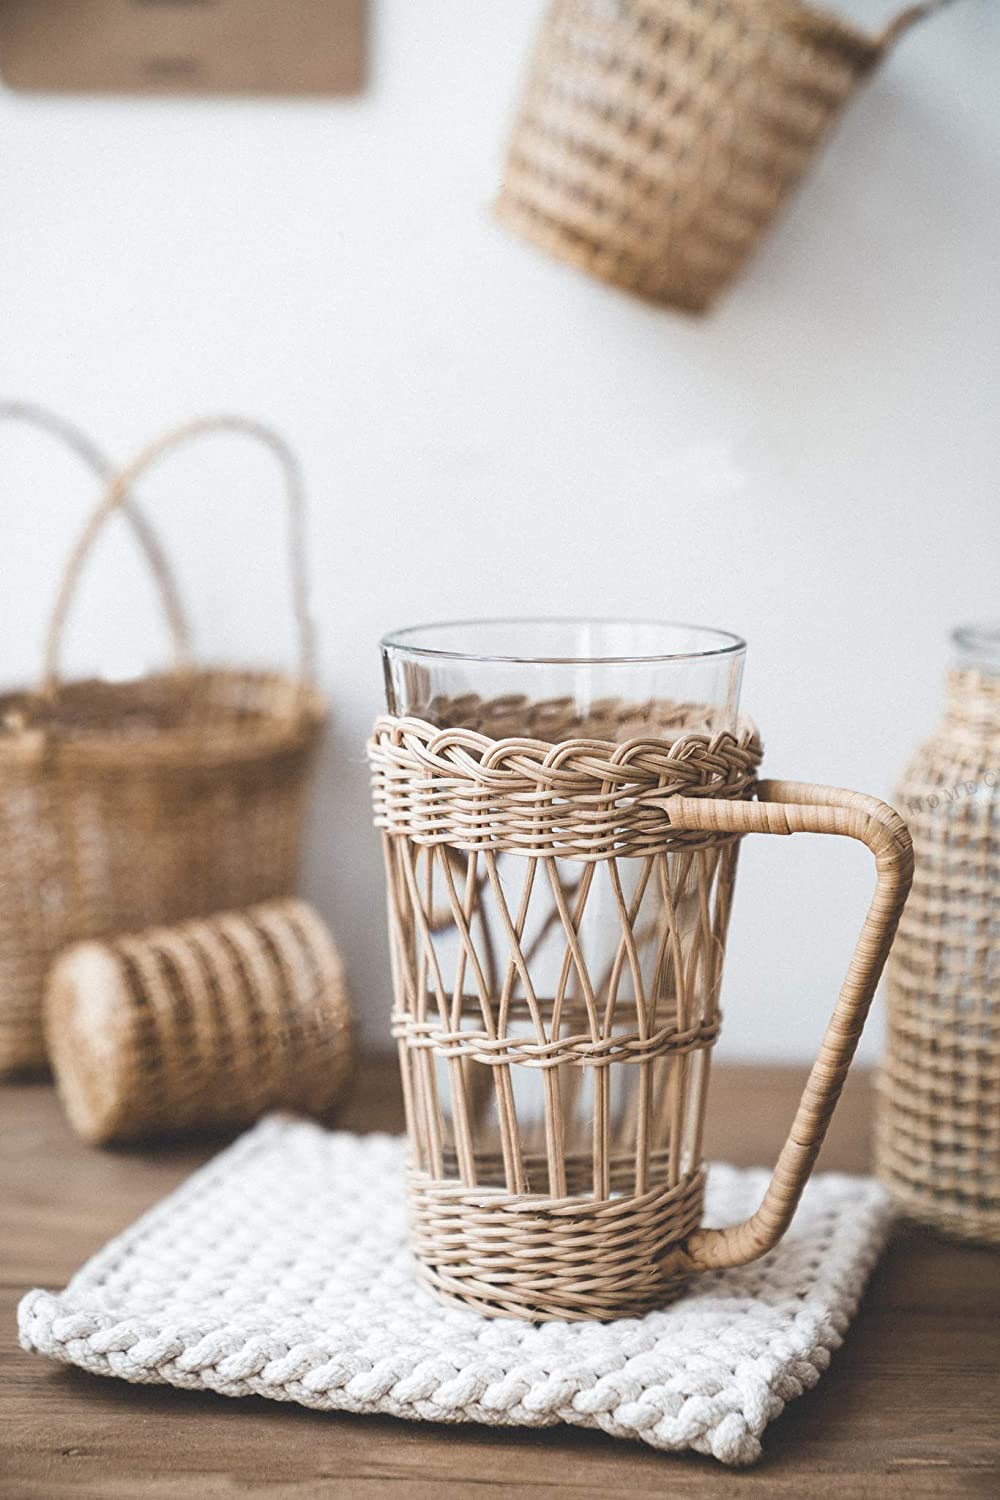 RISEON Vintage Rustic Hand-Woven Bamboo Rattan Cup Holder Coasters Drink Holder Stand Clear Glass Cup Holder with Handle for Coffee Tea Boho Home Decor Gift